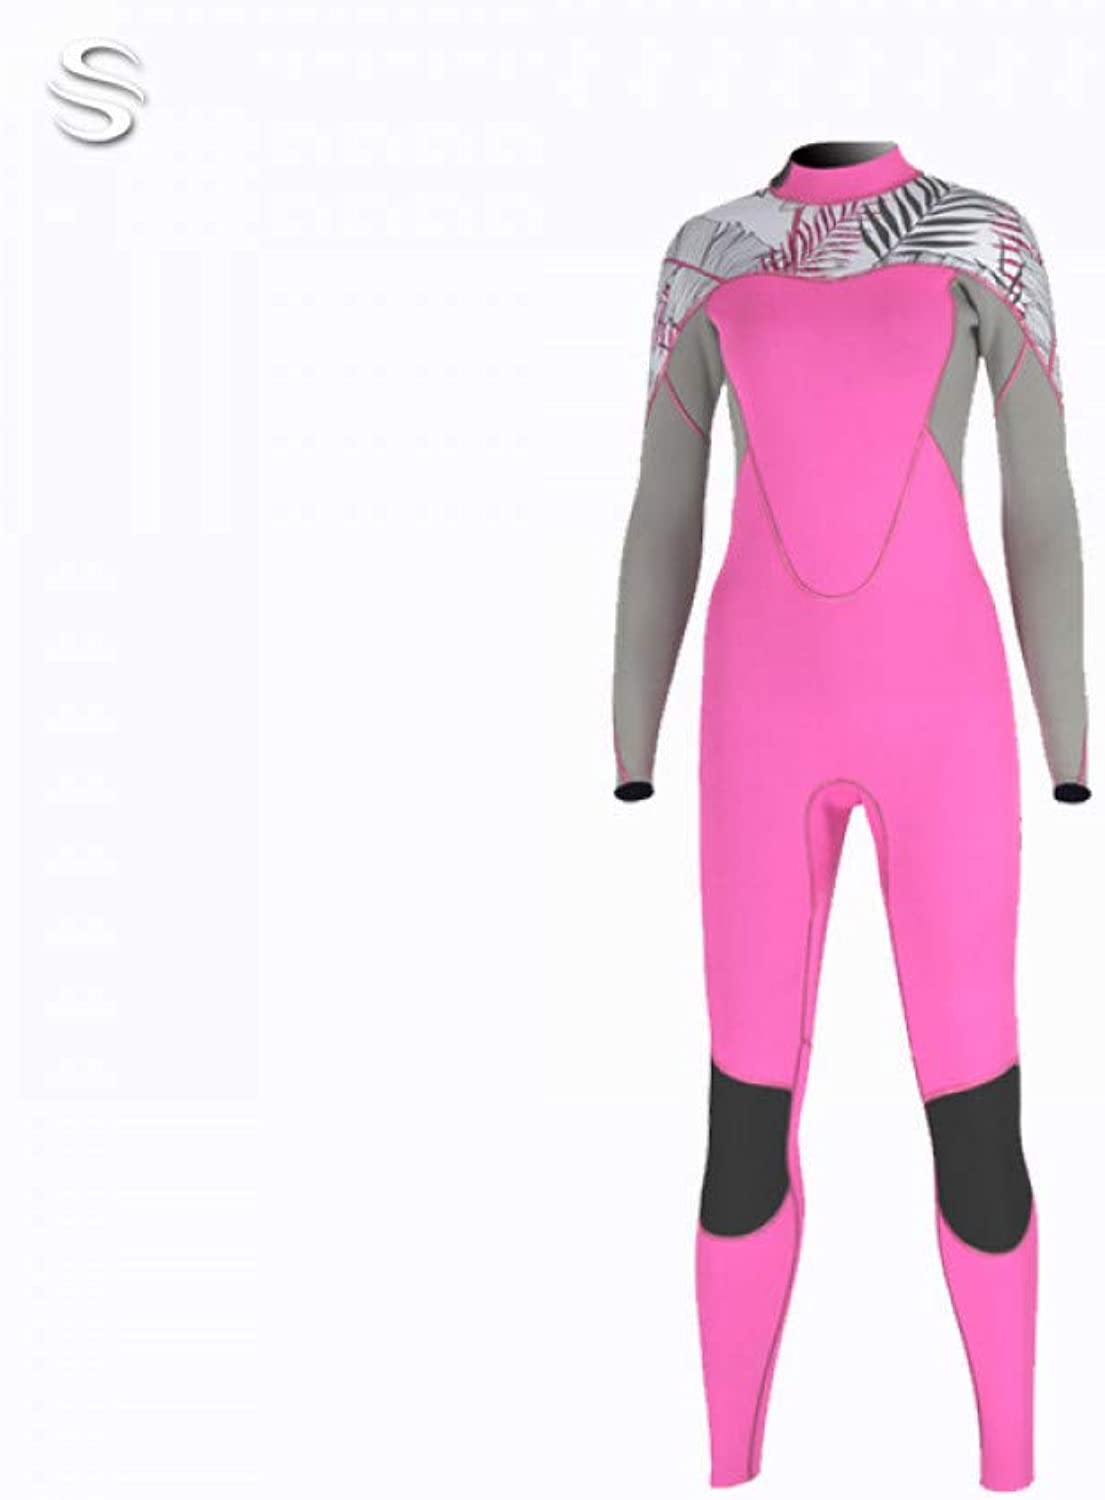 Siamese diving suit female 2mm long sleeve sunscreen wetsuit female warm wet wetsuitfor Surfing, Scuba Diving,Surf,Kayak Body board